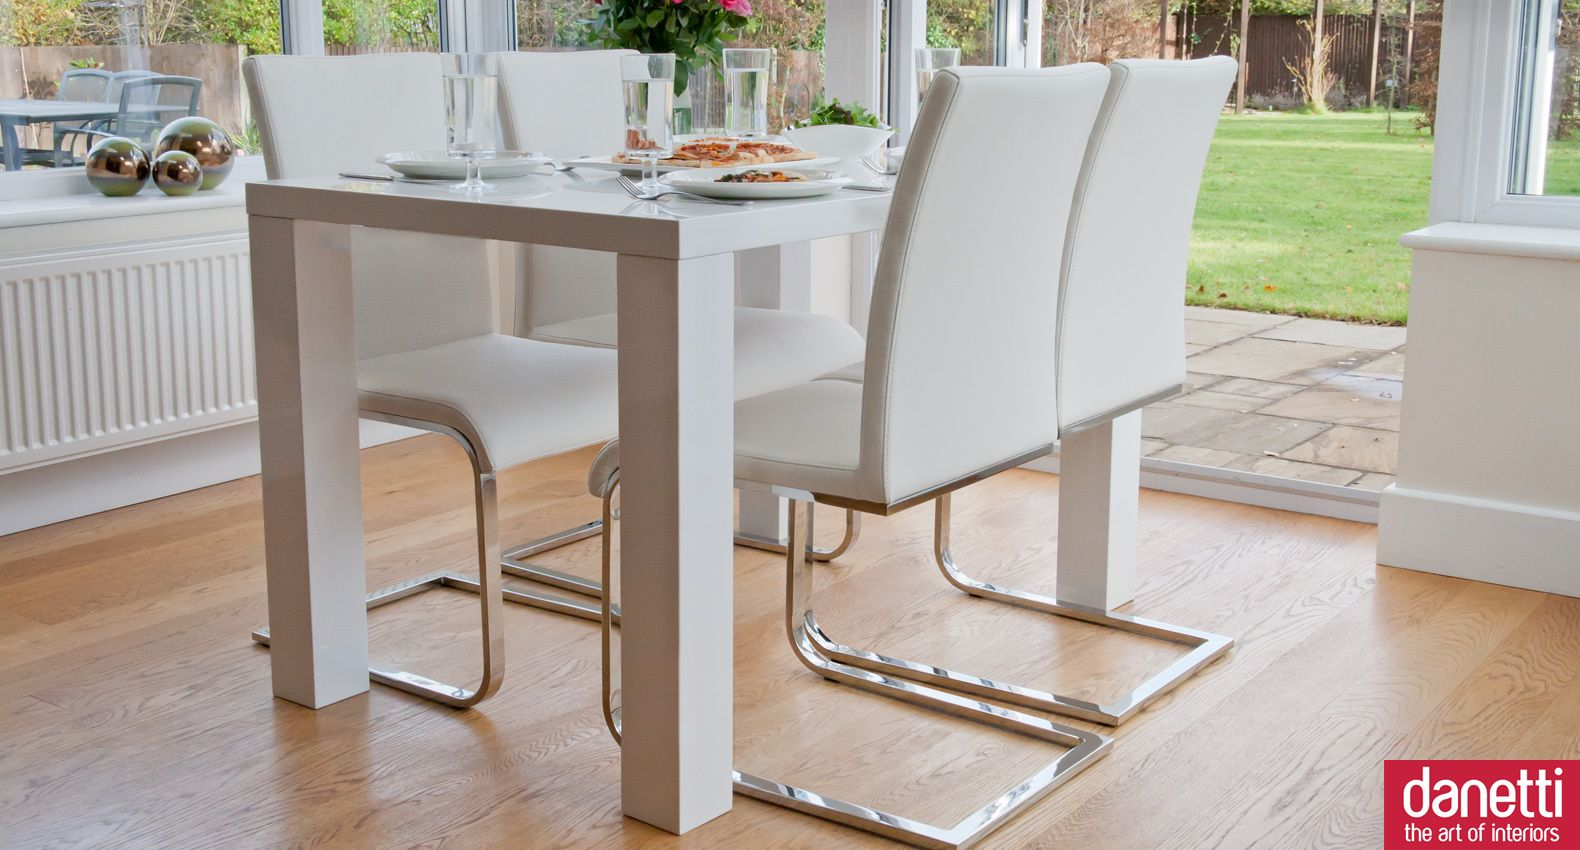 af06823f4d2d The Fern 4 Seater White Gloss Dining Table is a fabulous medium sized dining  table which